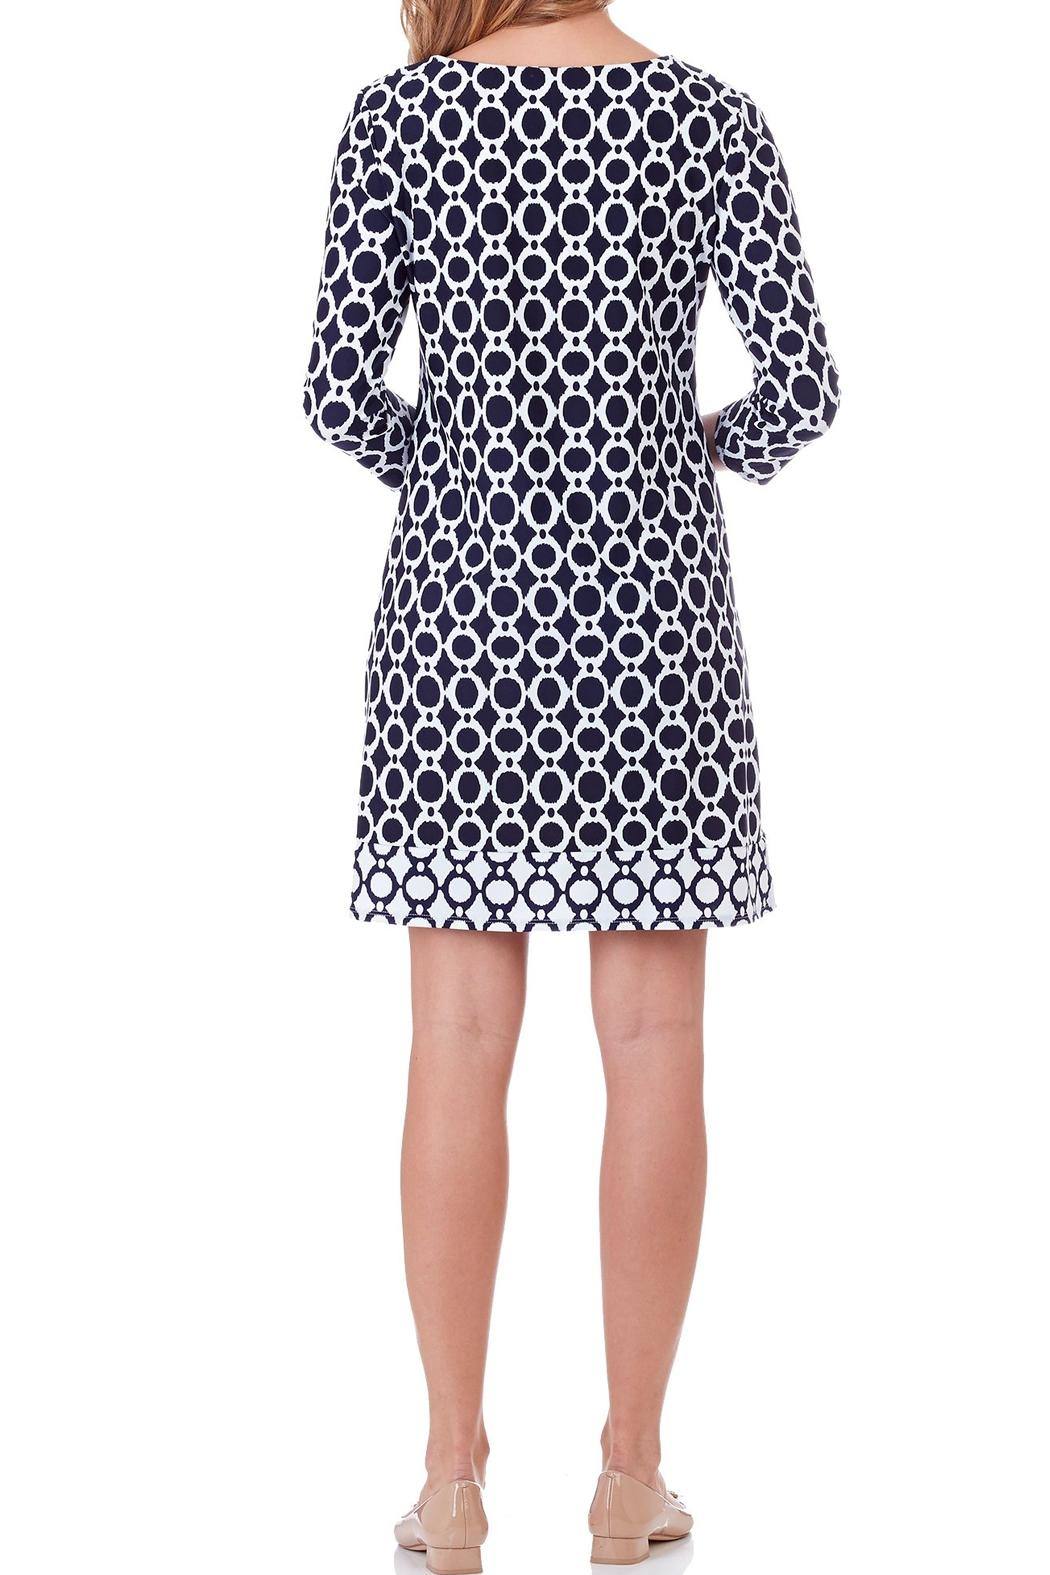 Jude Connally Cara Shift Dress - Front Full Image